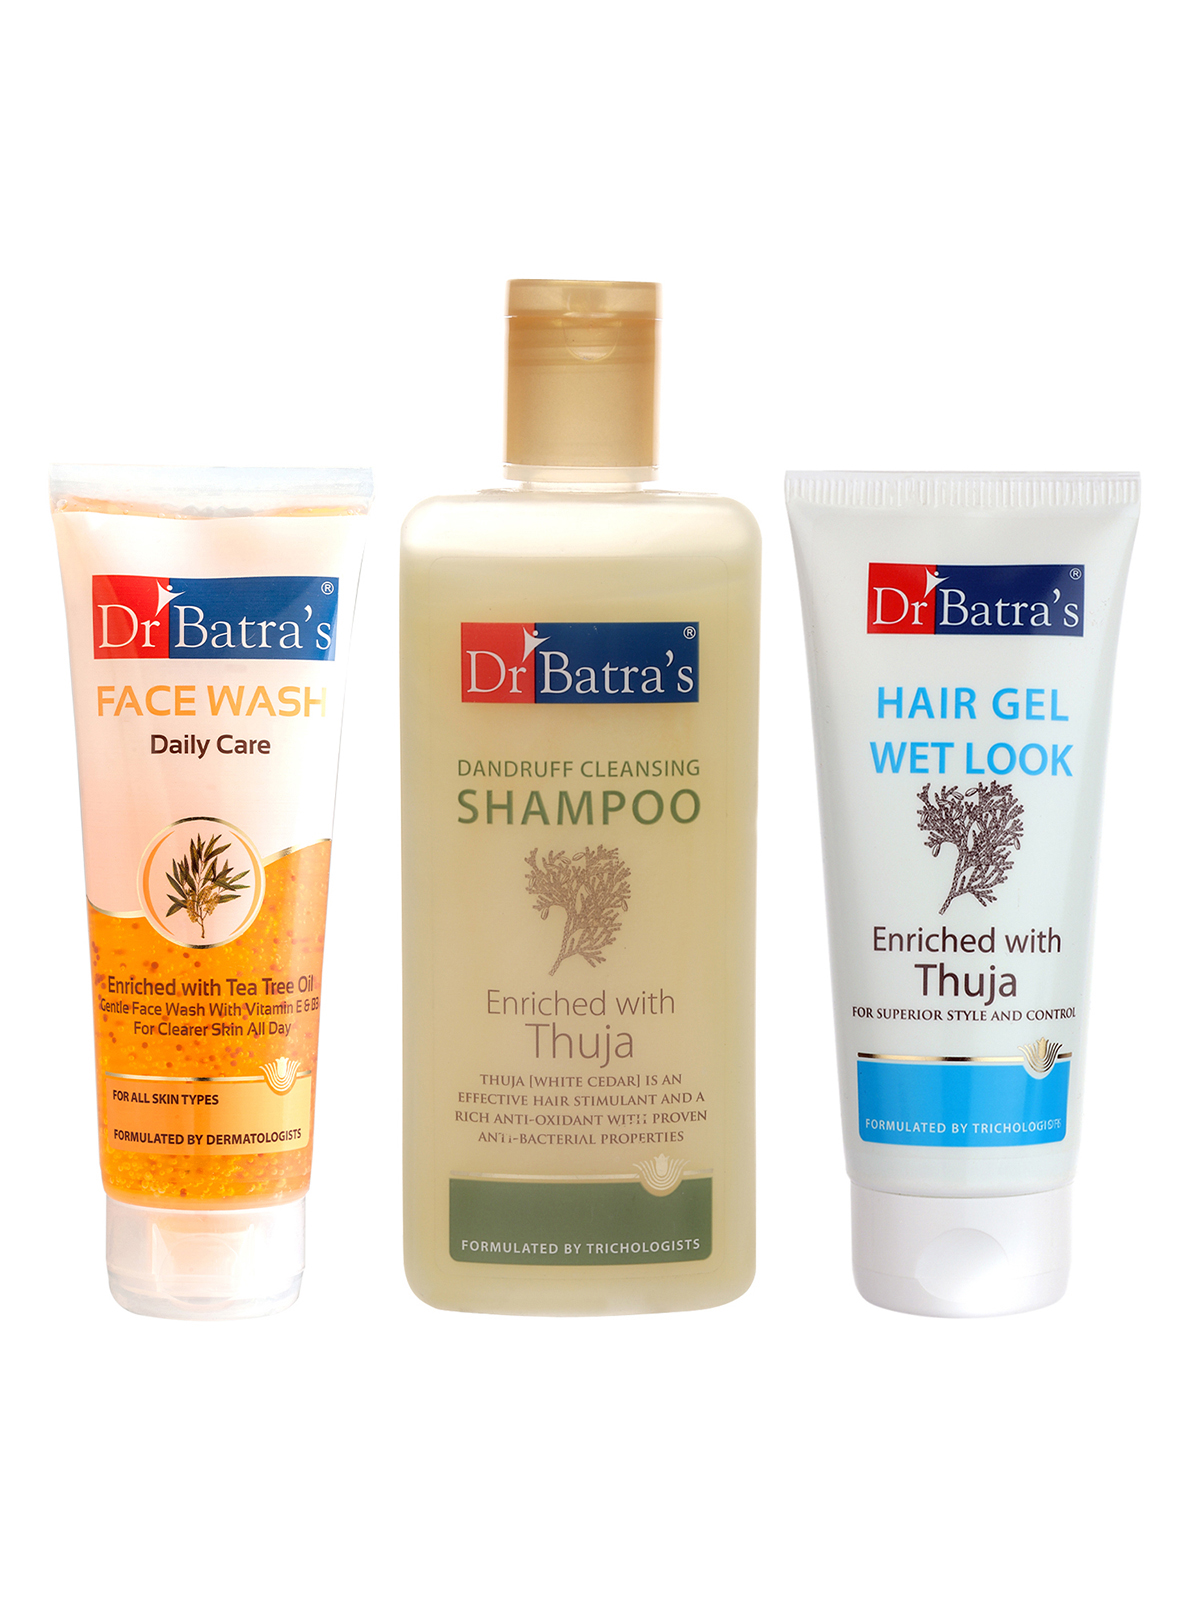 Dr Batra's | Dr Batra's Dandruff Cleansing Shampoo - 200 ml, Hair Gel - 100 gm and Face Wash Daily Care - 100 gm (Pack of 3 for Men)